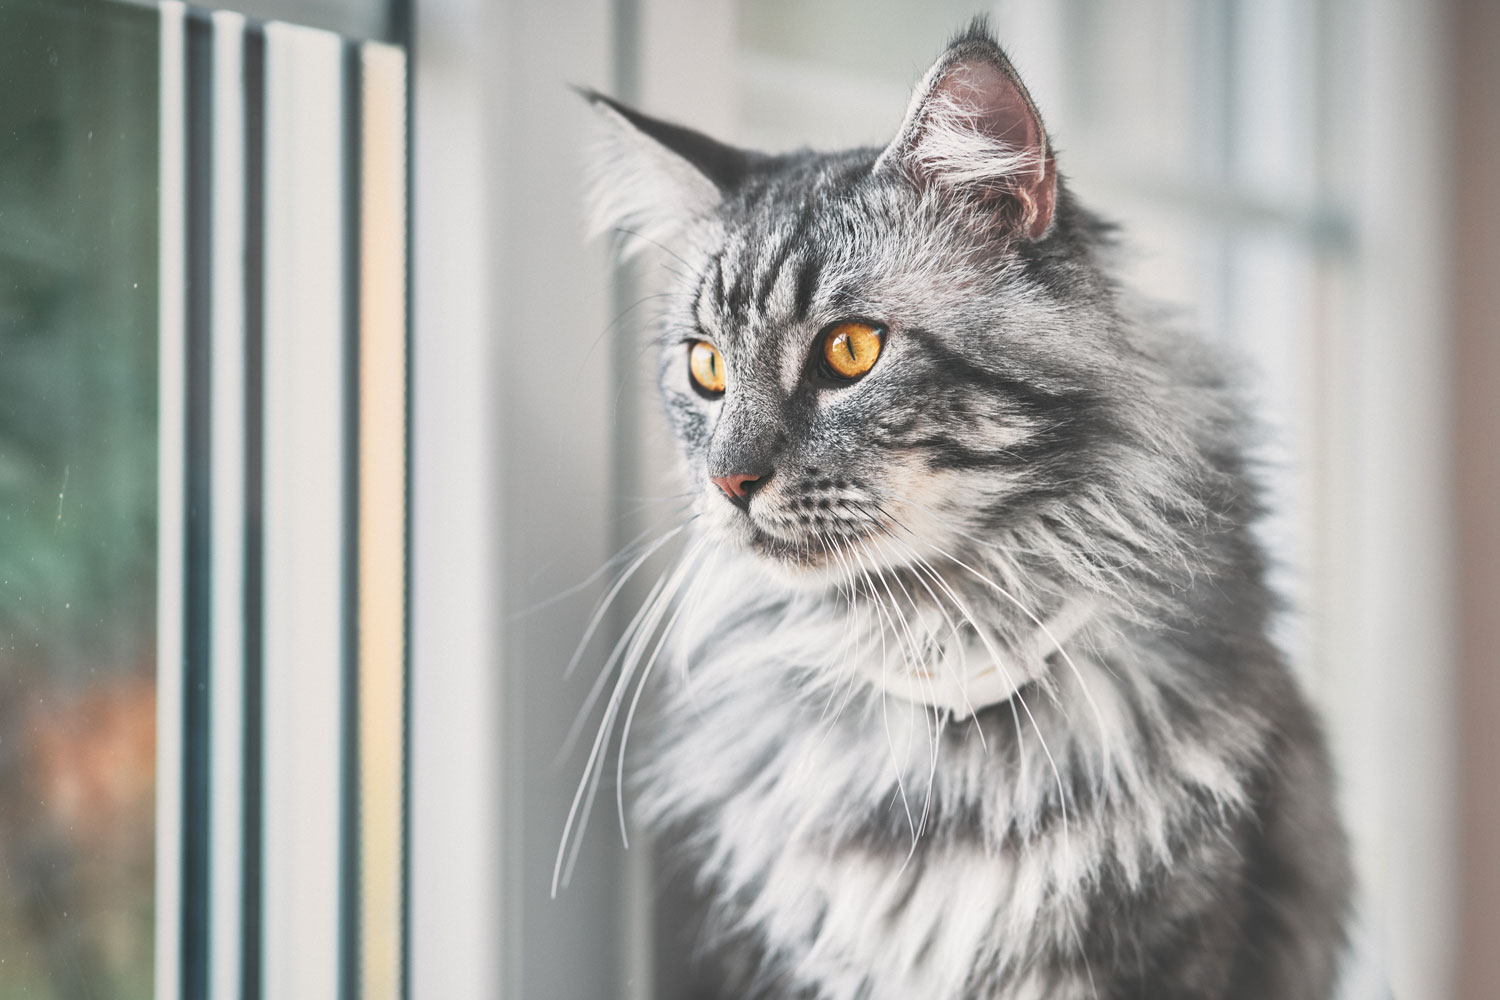 A cute fierce looking maine coon cat looking outside the window, Orange Cat Eyes: What Breed Could It Be?